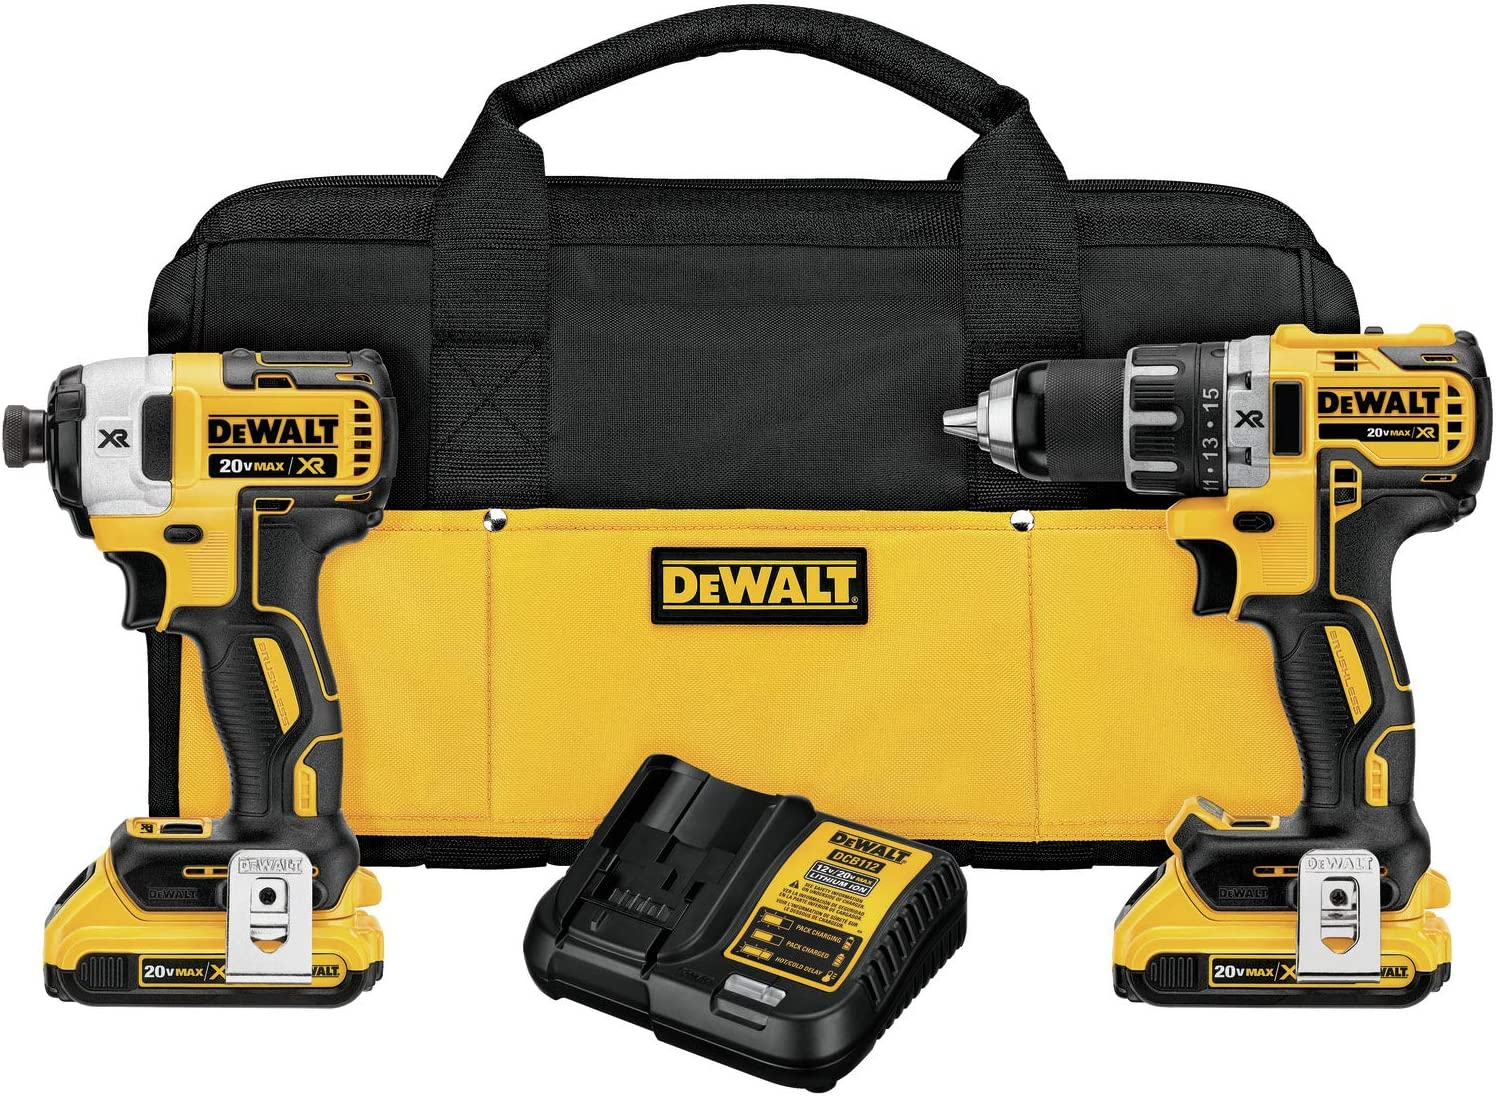 Dewalt 20V MAX XR 2.0Ah Li-Ion Brushless Compact Drill Driver DCD791 Impact Driver DCF887 Combo kit Renewed